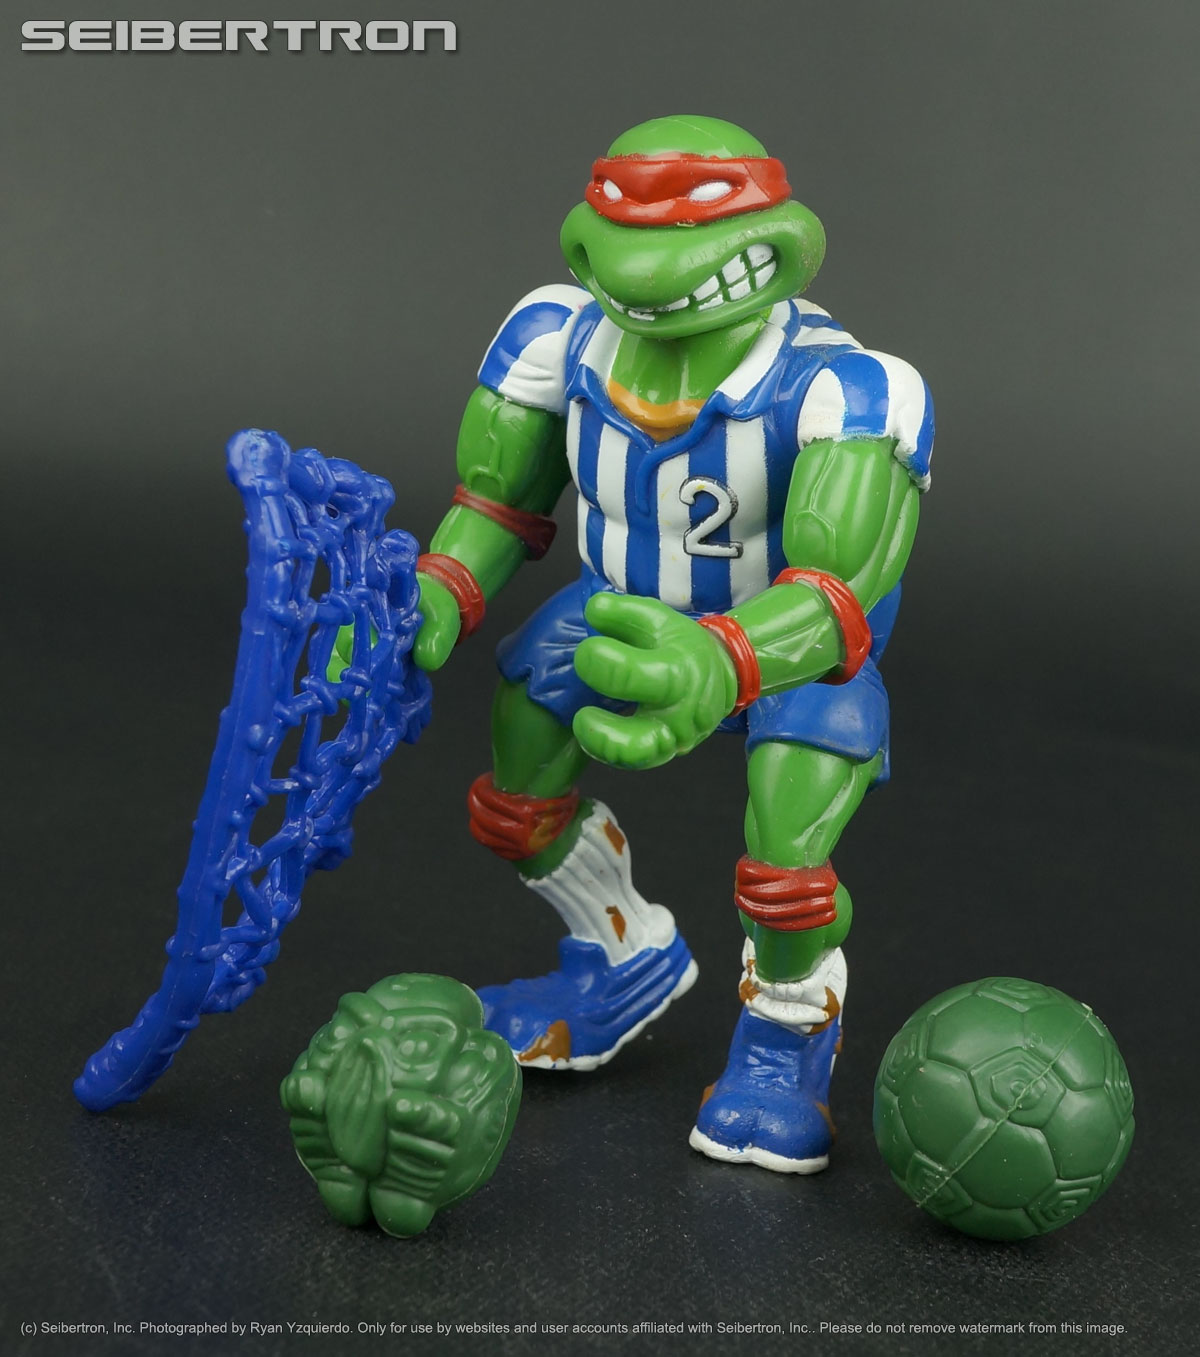 Teenage Mutant Ninja Turtles and Transformers listings from Seibertron.com: SHELL KICKIN RAPH Teenage Mutant Ninja Turtles 100% complete 1991 TMNT Raphael